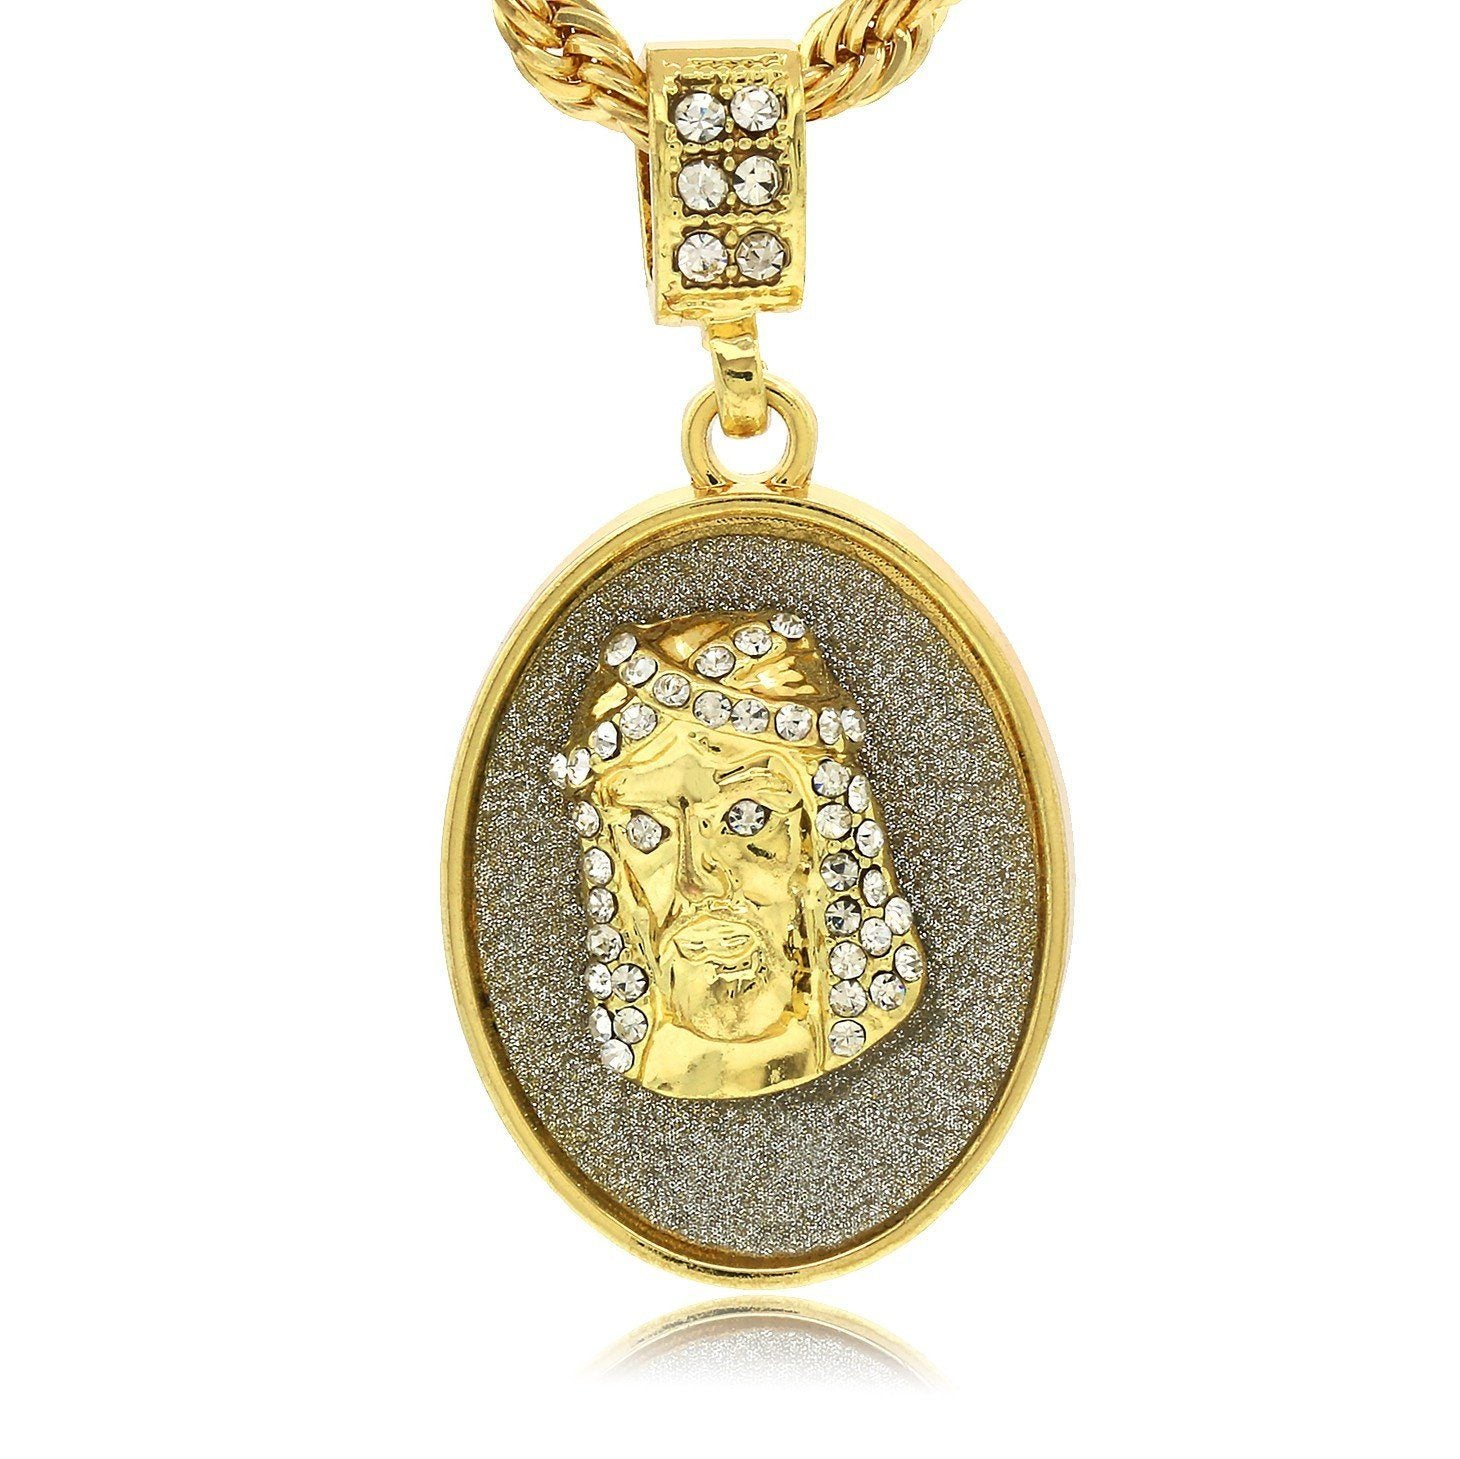 OVAL COIN JESUS PENDANT WITH GOLD ROPE CHAIN